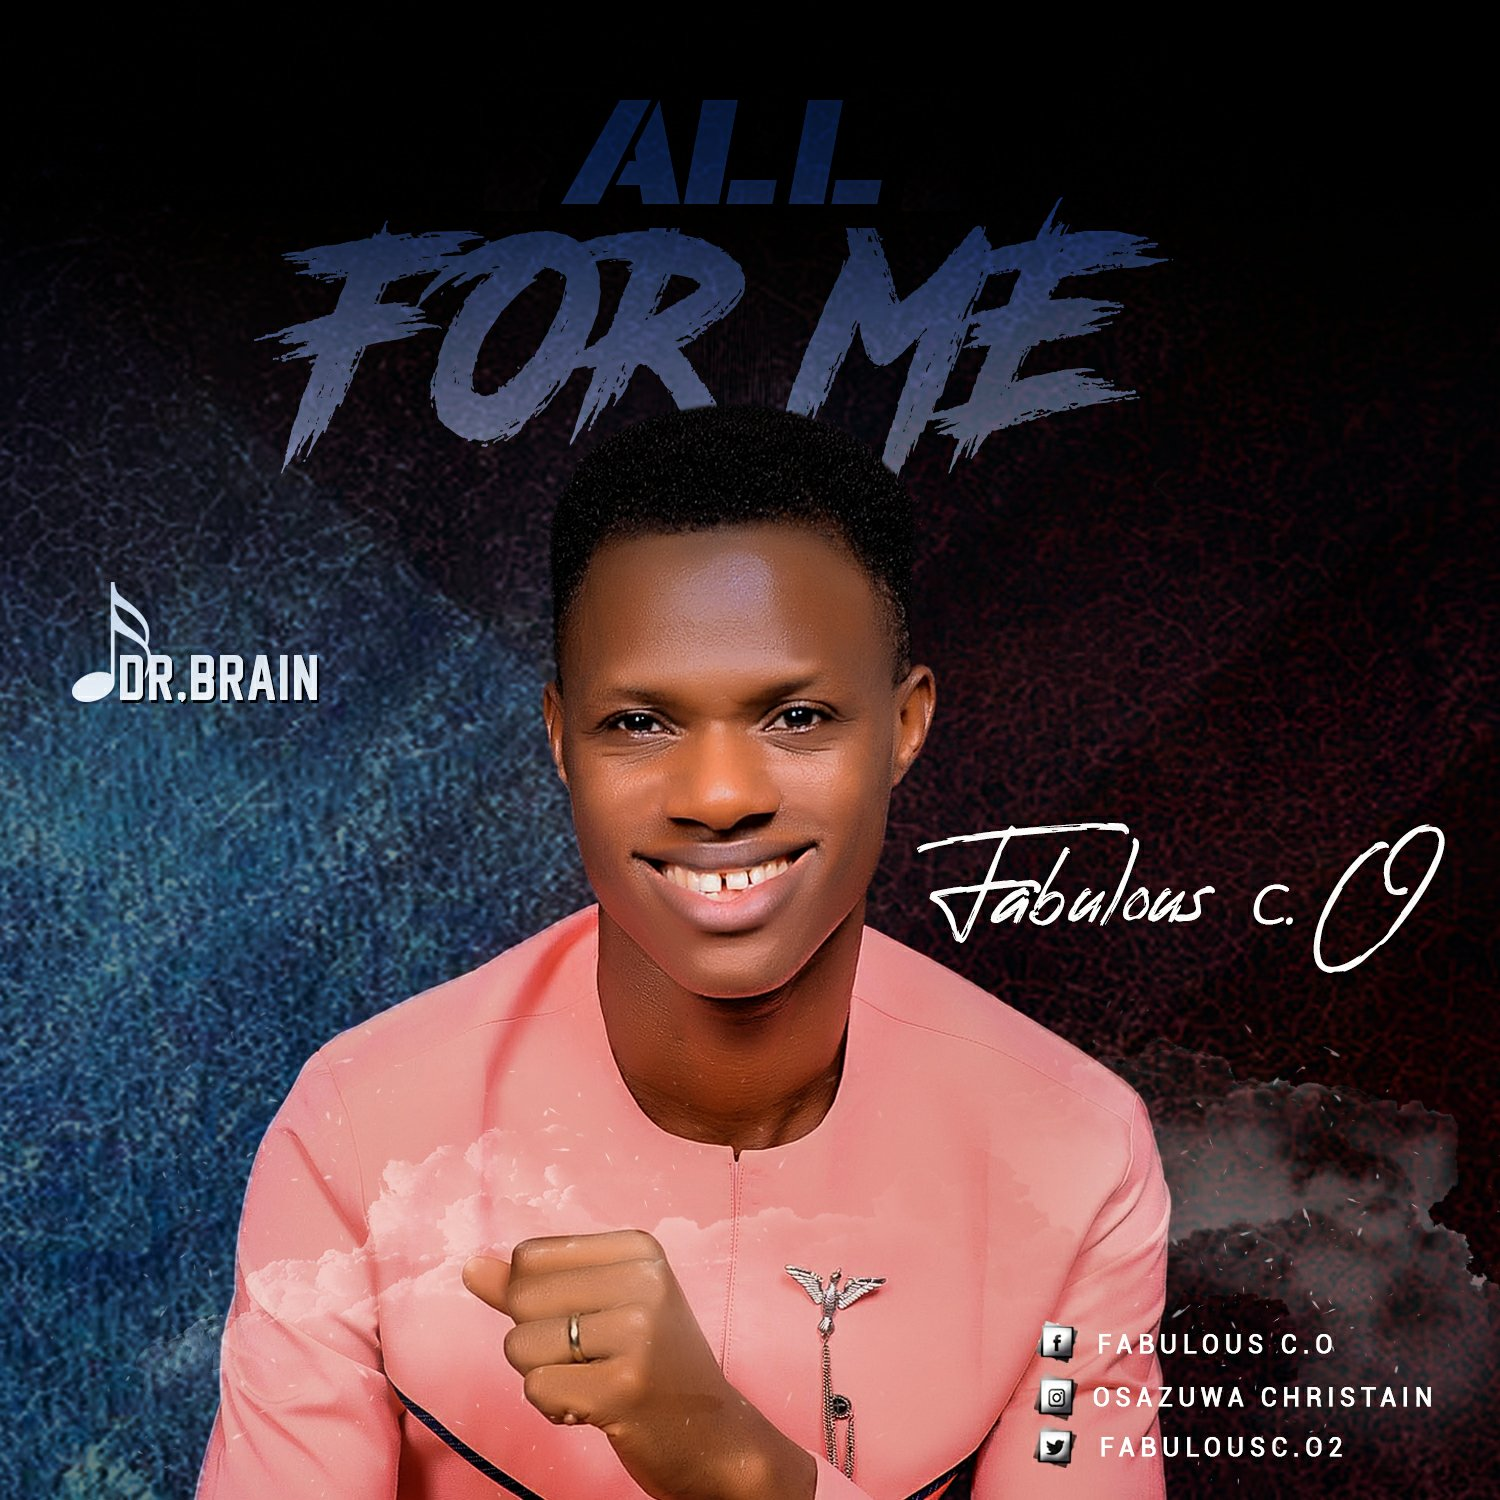 DOWNLOAD Music: Fabulous C.O – All For Me